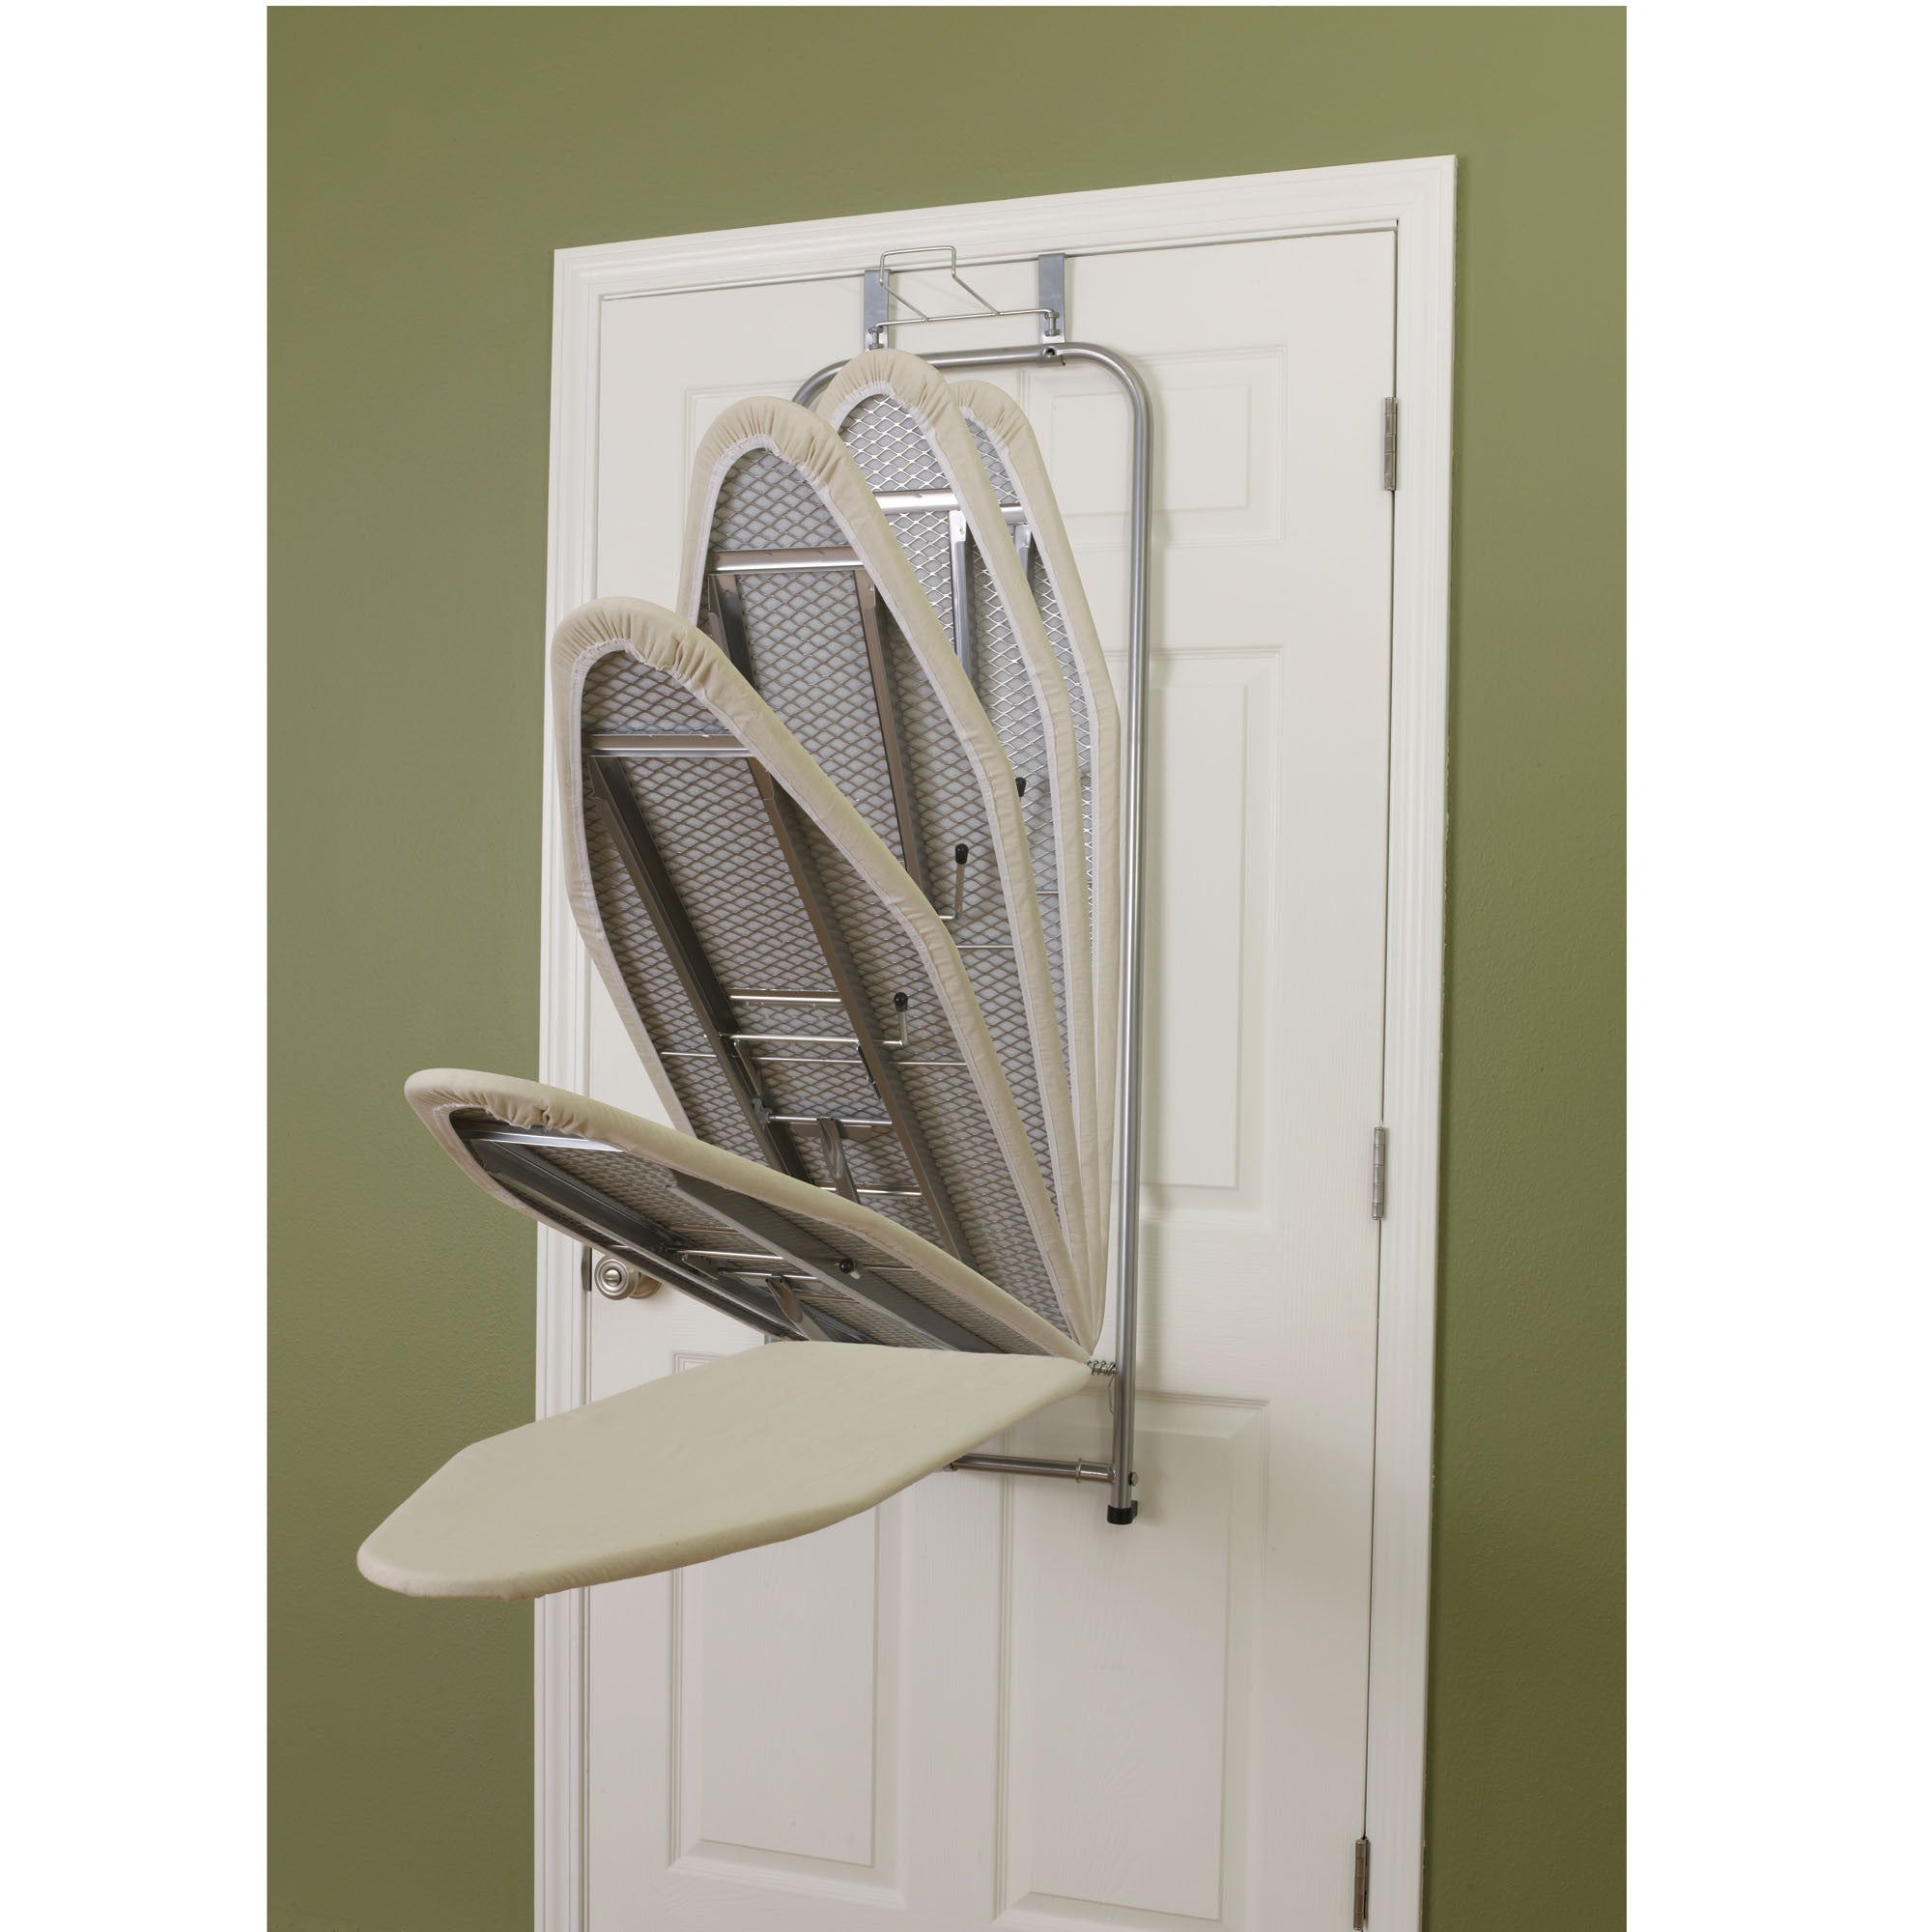 ... Over The Door Ironing Board Holder Satin Silver Compact Household Space  Saving   Harvey U0026 Haley